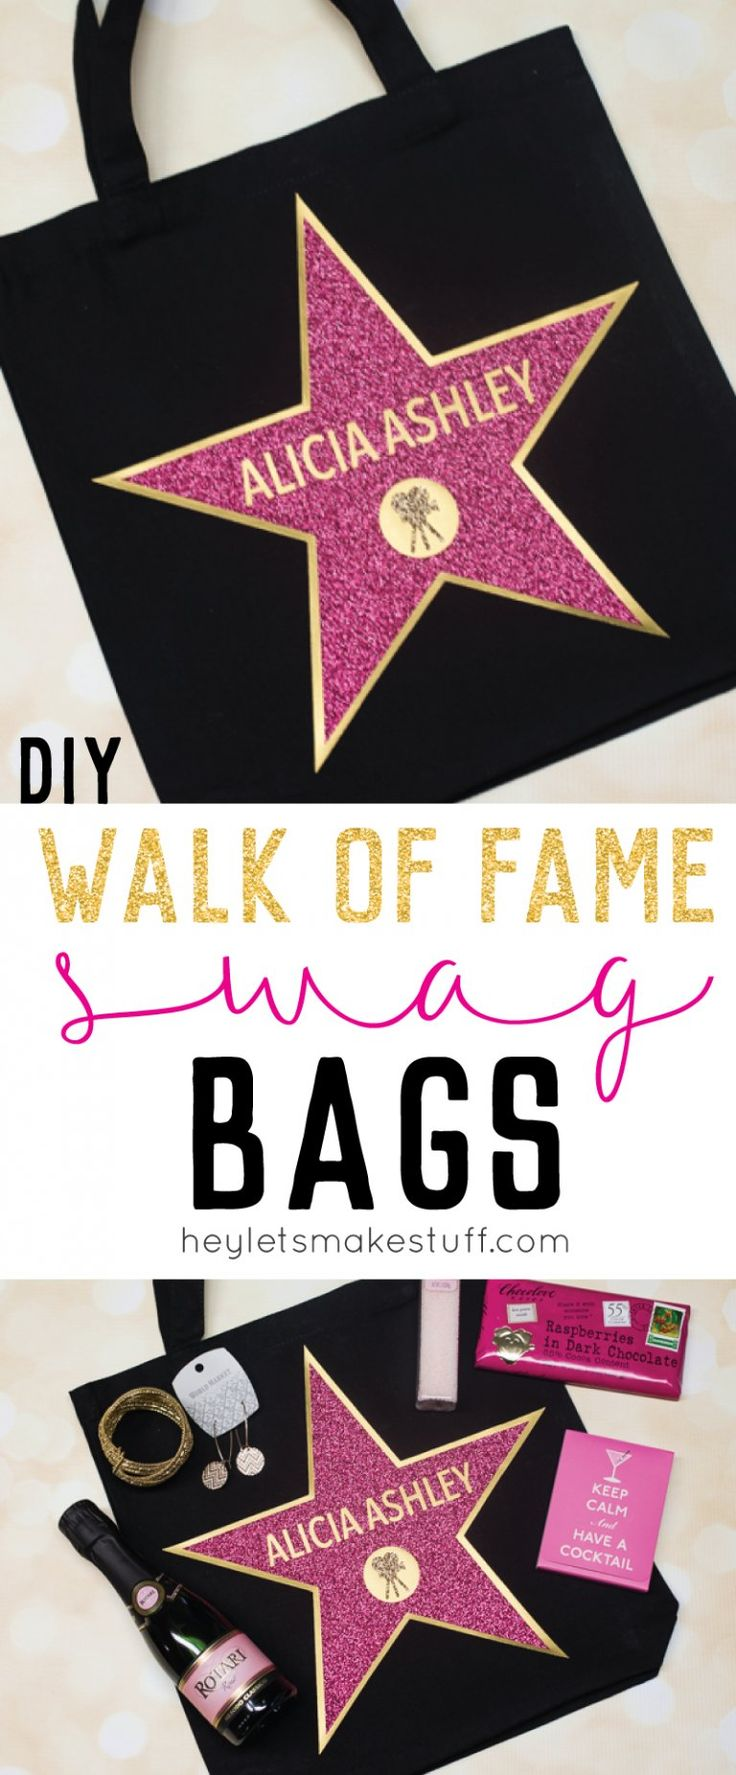 Hollywood walk of fame swag bags